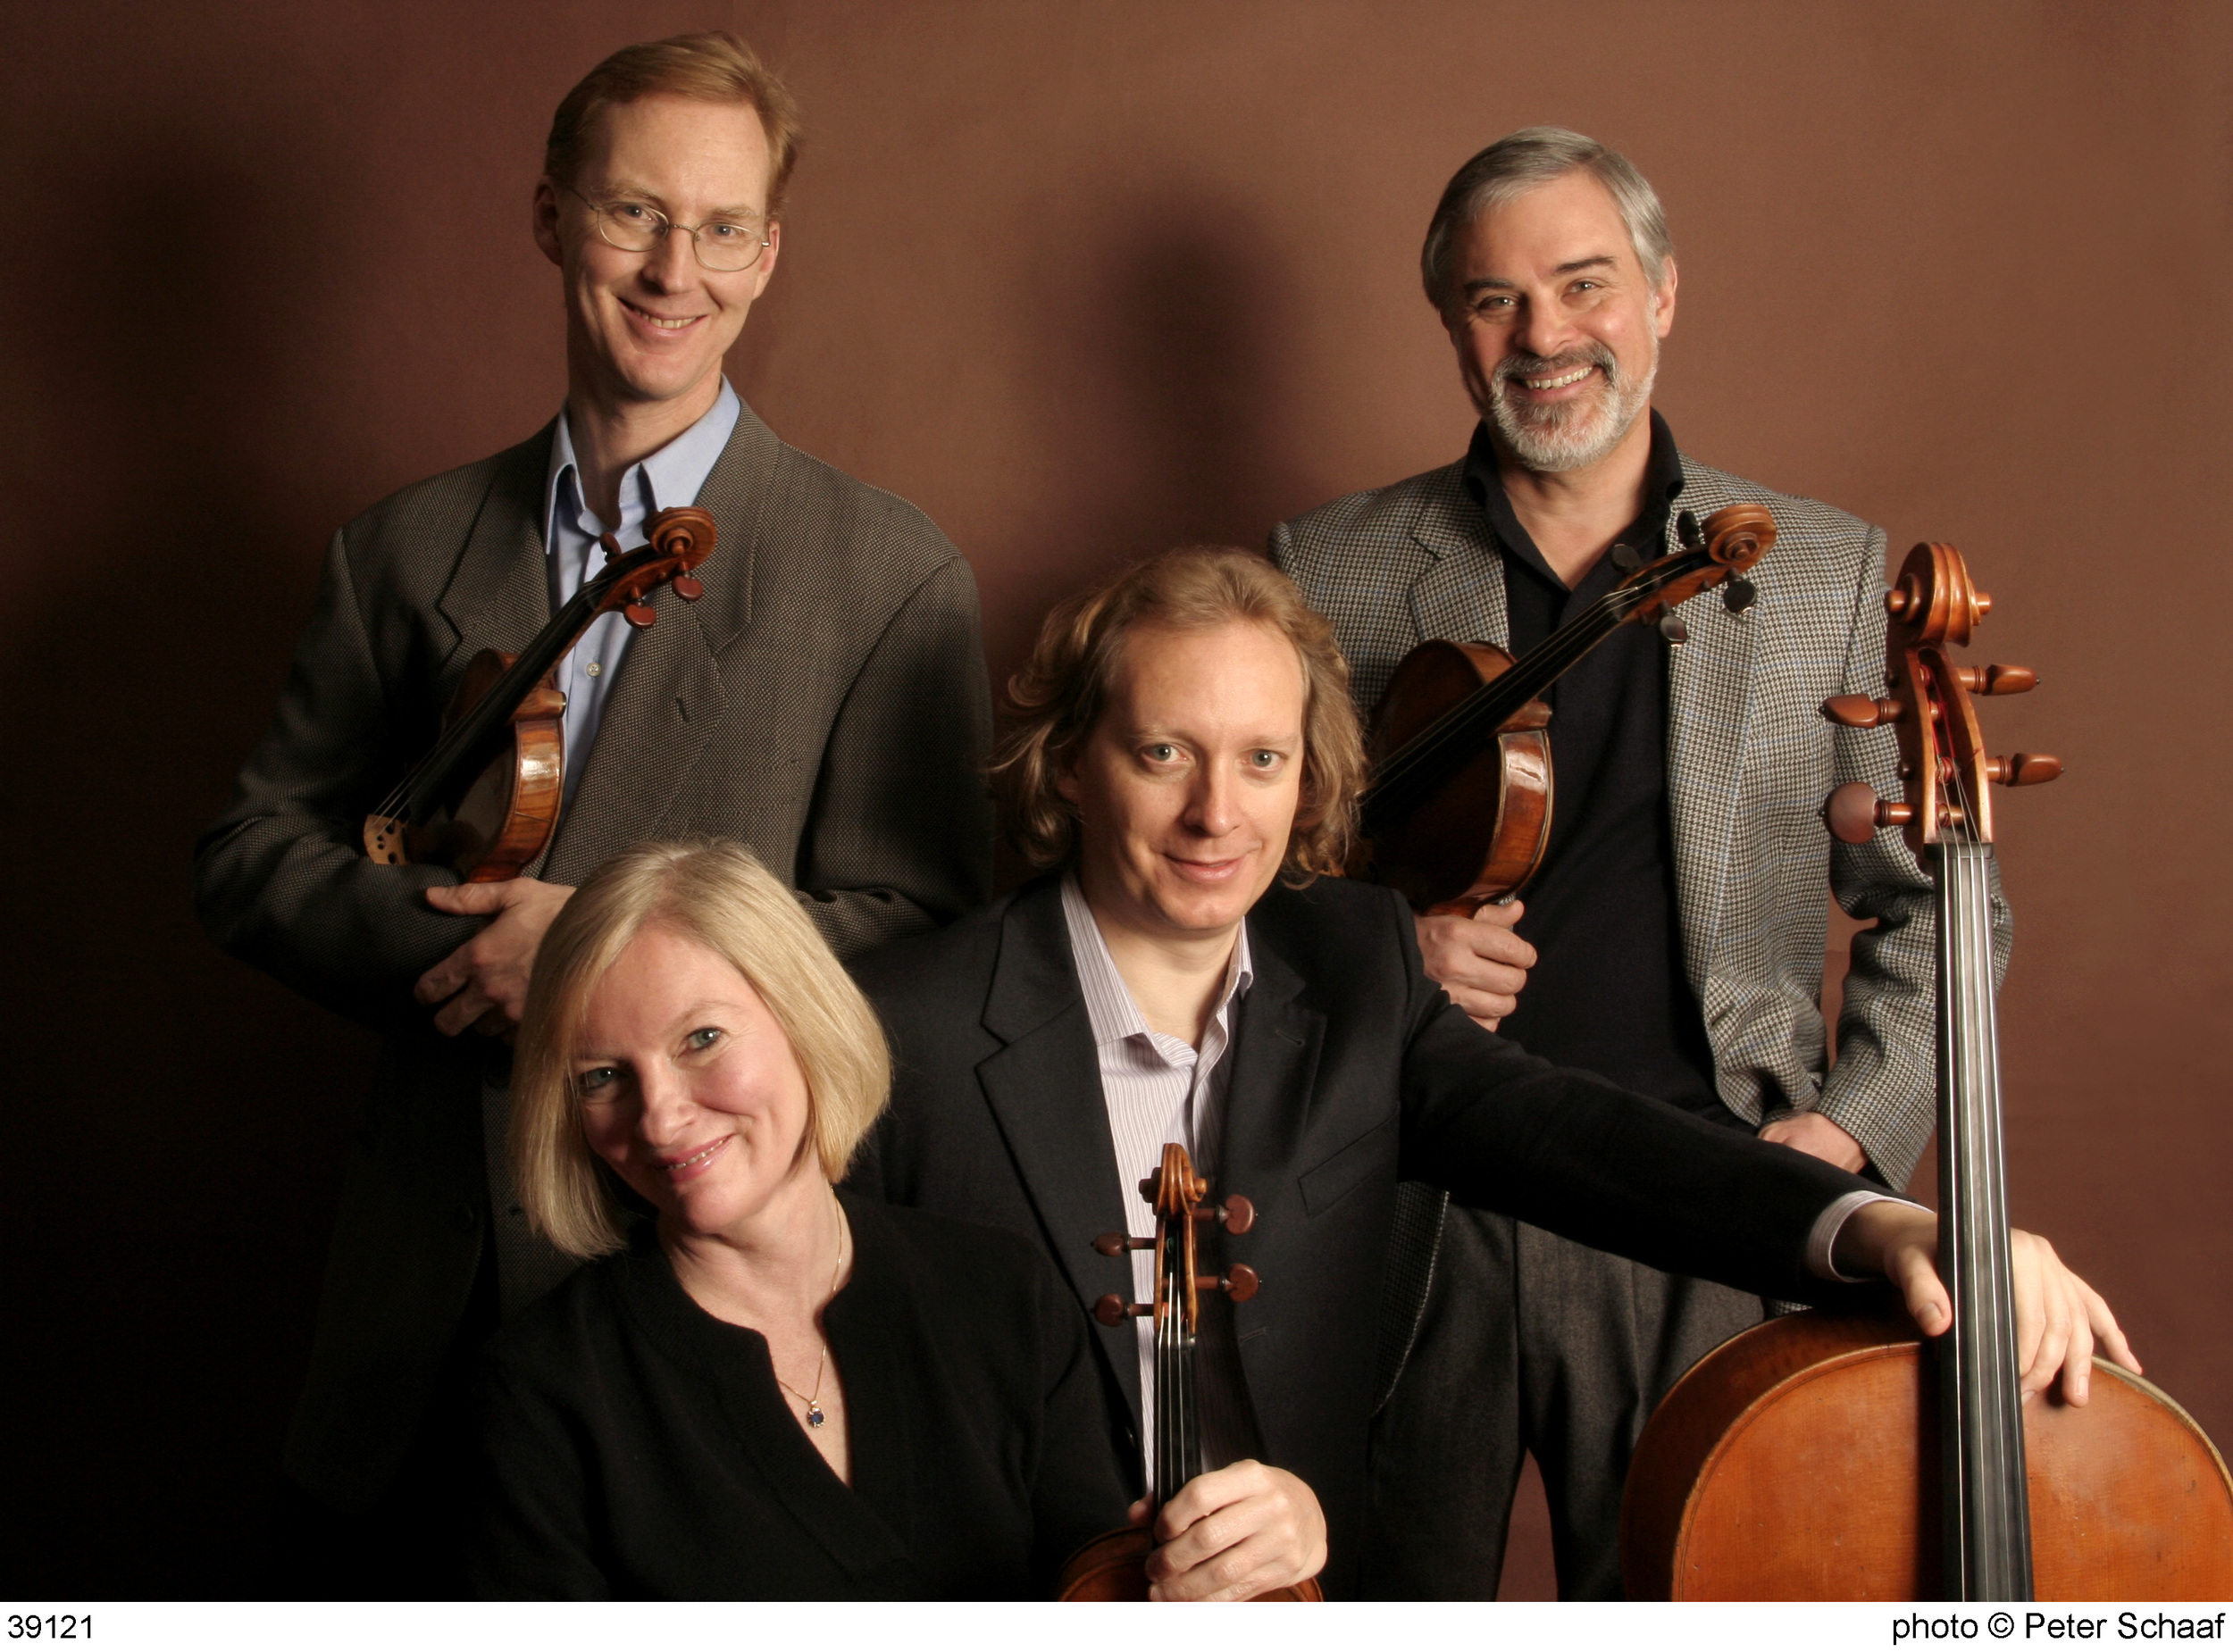 Clink for information on the American Quartet